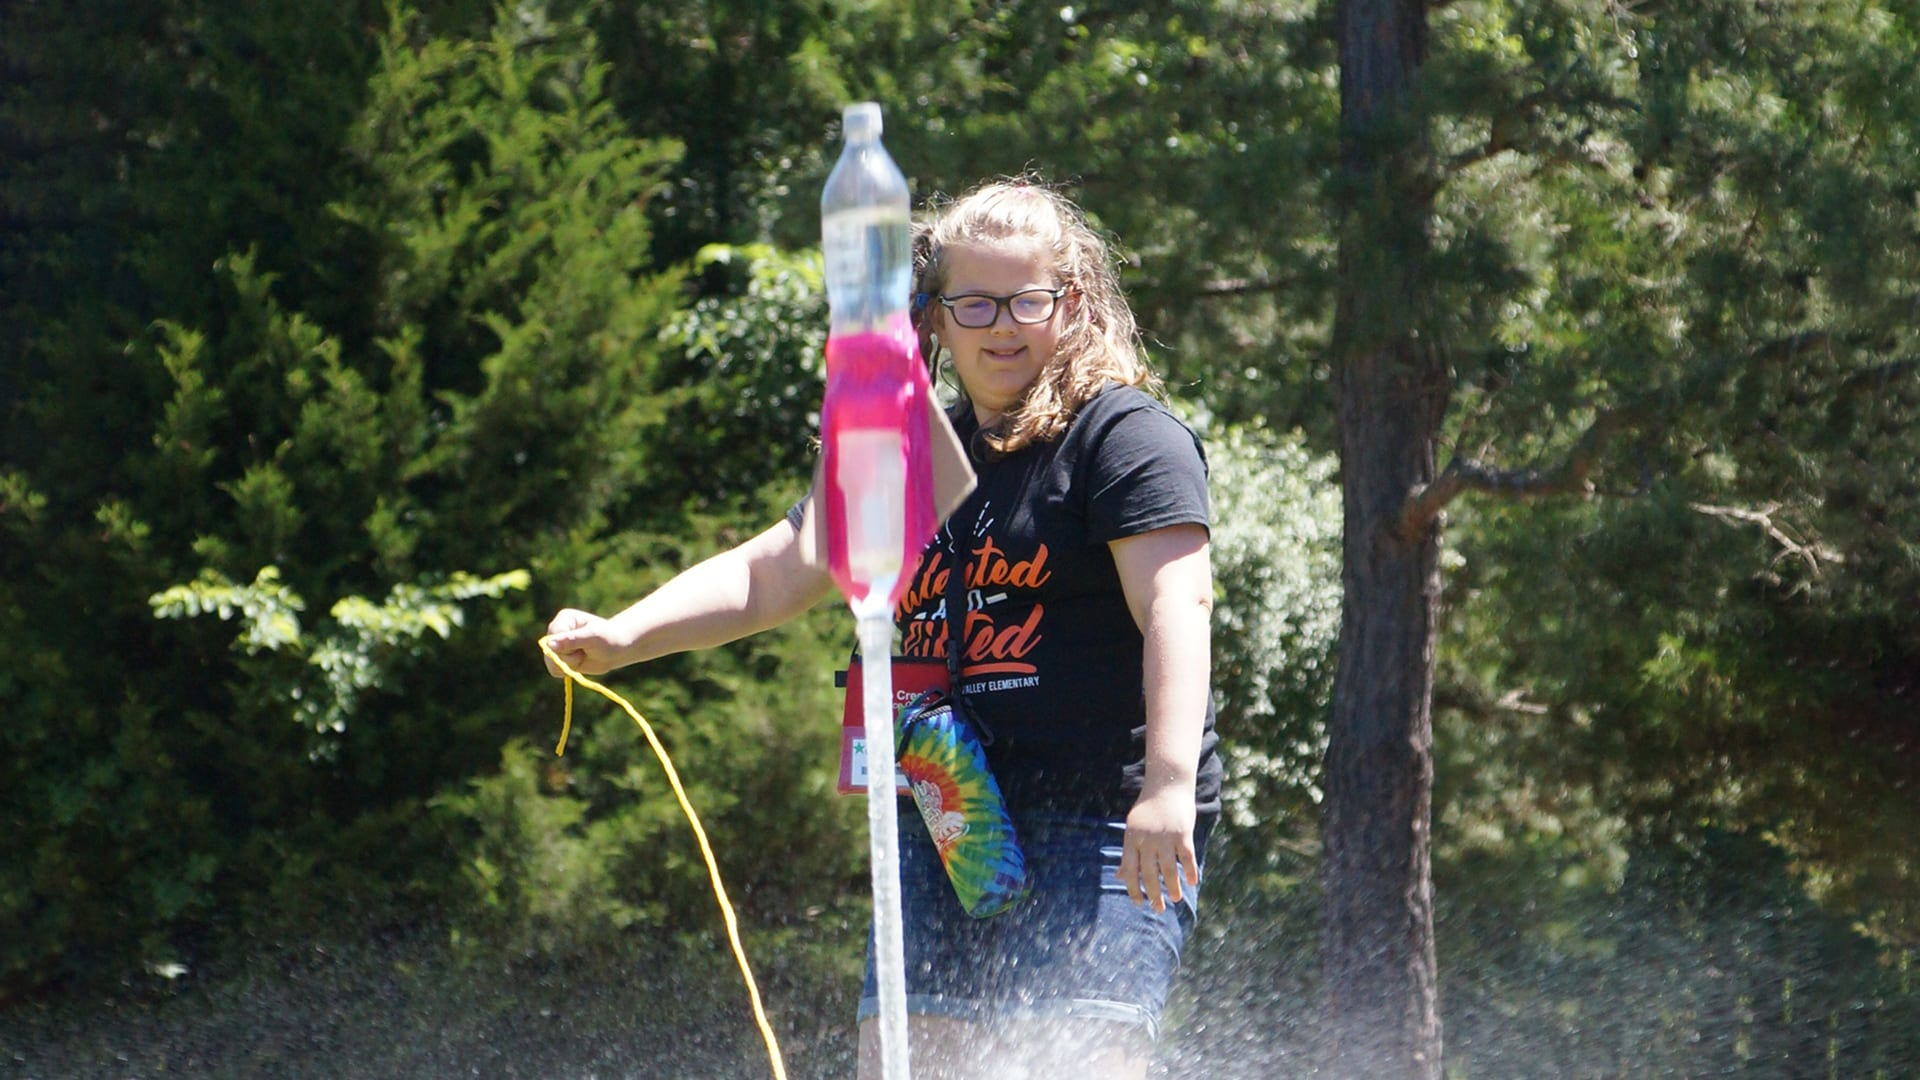 Home Page Image Carousel - Science Camp - Physics Bottle Rockets - Cub Creek Science and Animal Camp